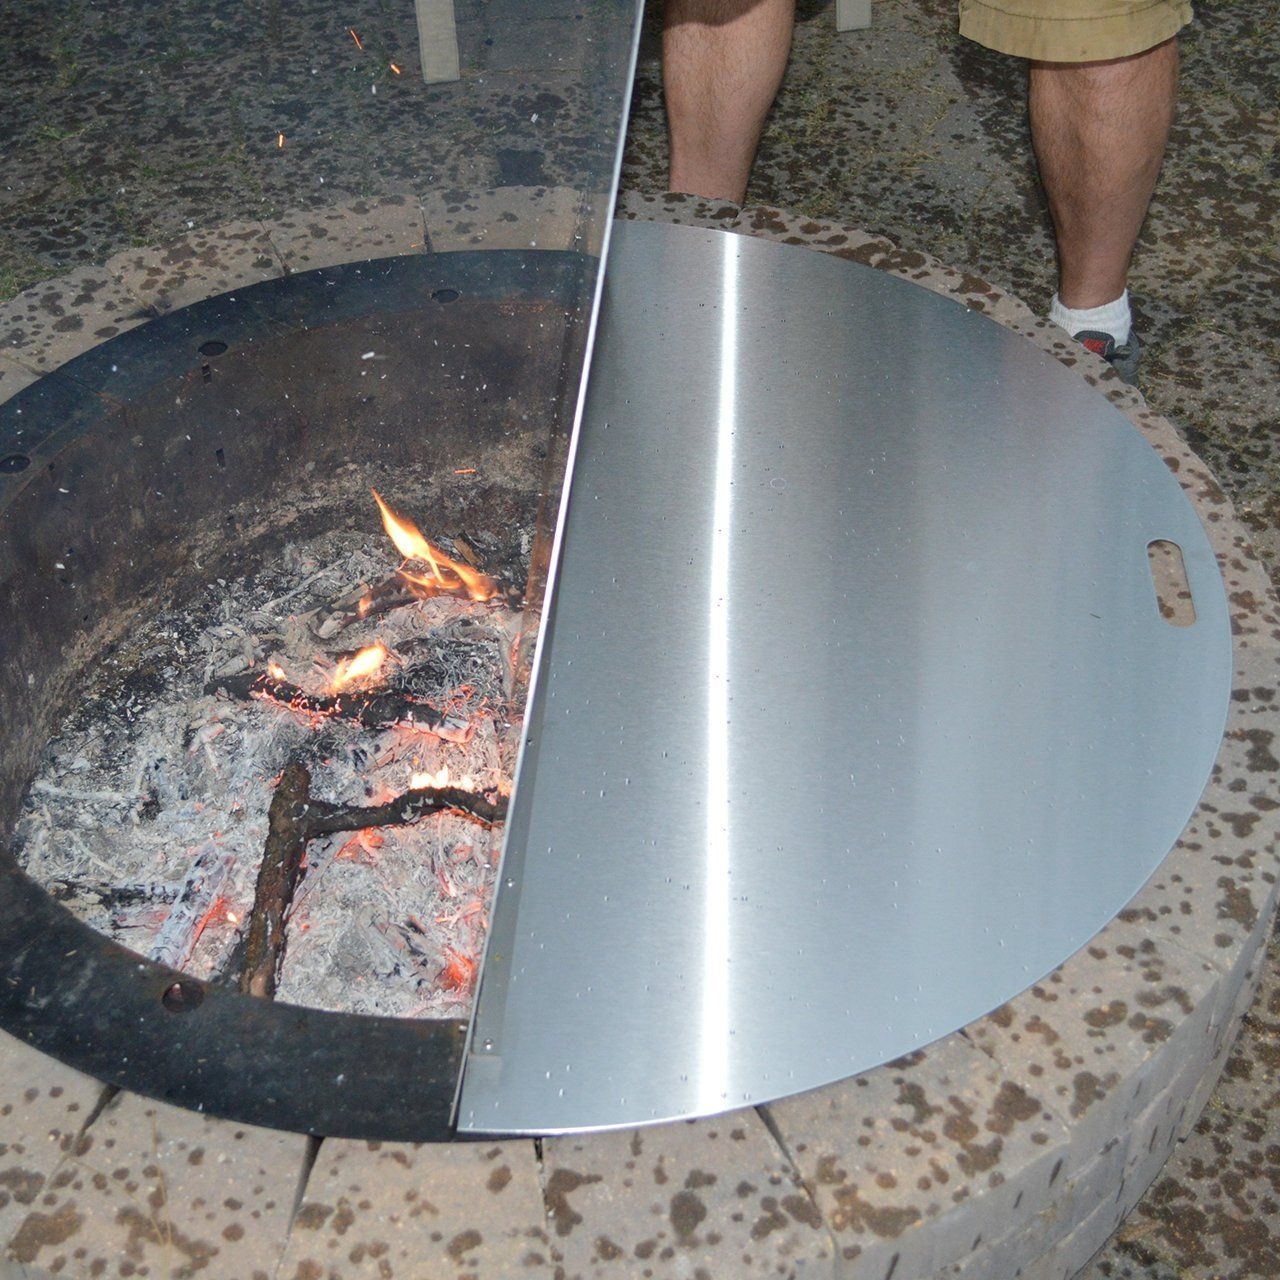 40stainless Steel Metal Round Fire Pit Campfire Ring Cover Snuffer Lid Grill Fire Table Or Wood Burning Pati Stainless Steel Fire Pit Fire Pit Steel Fire Pit